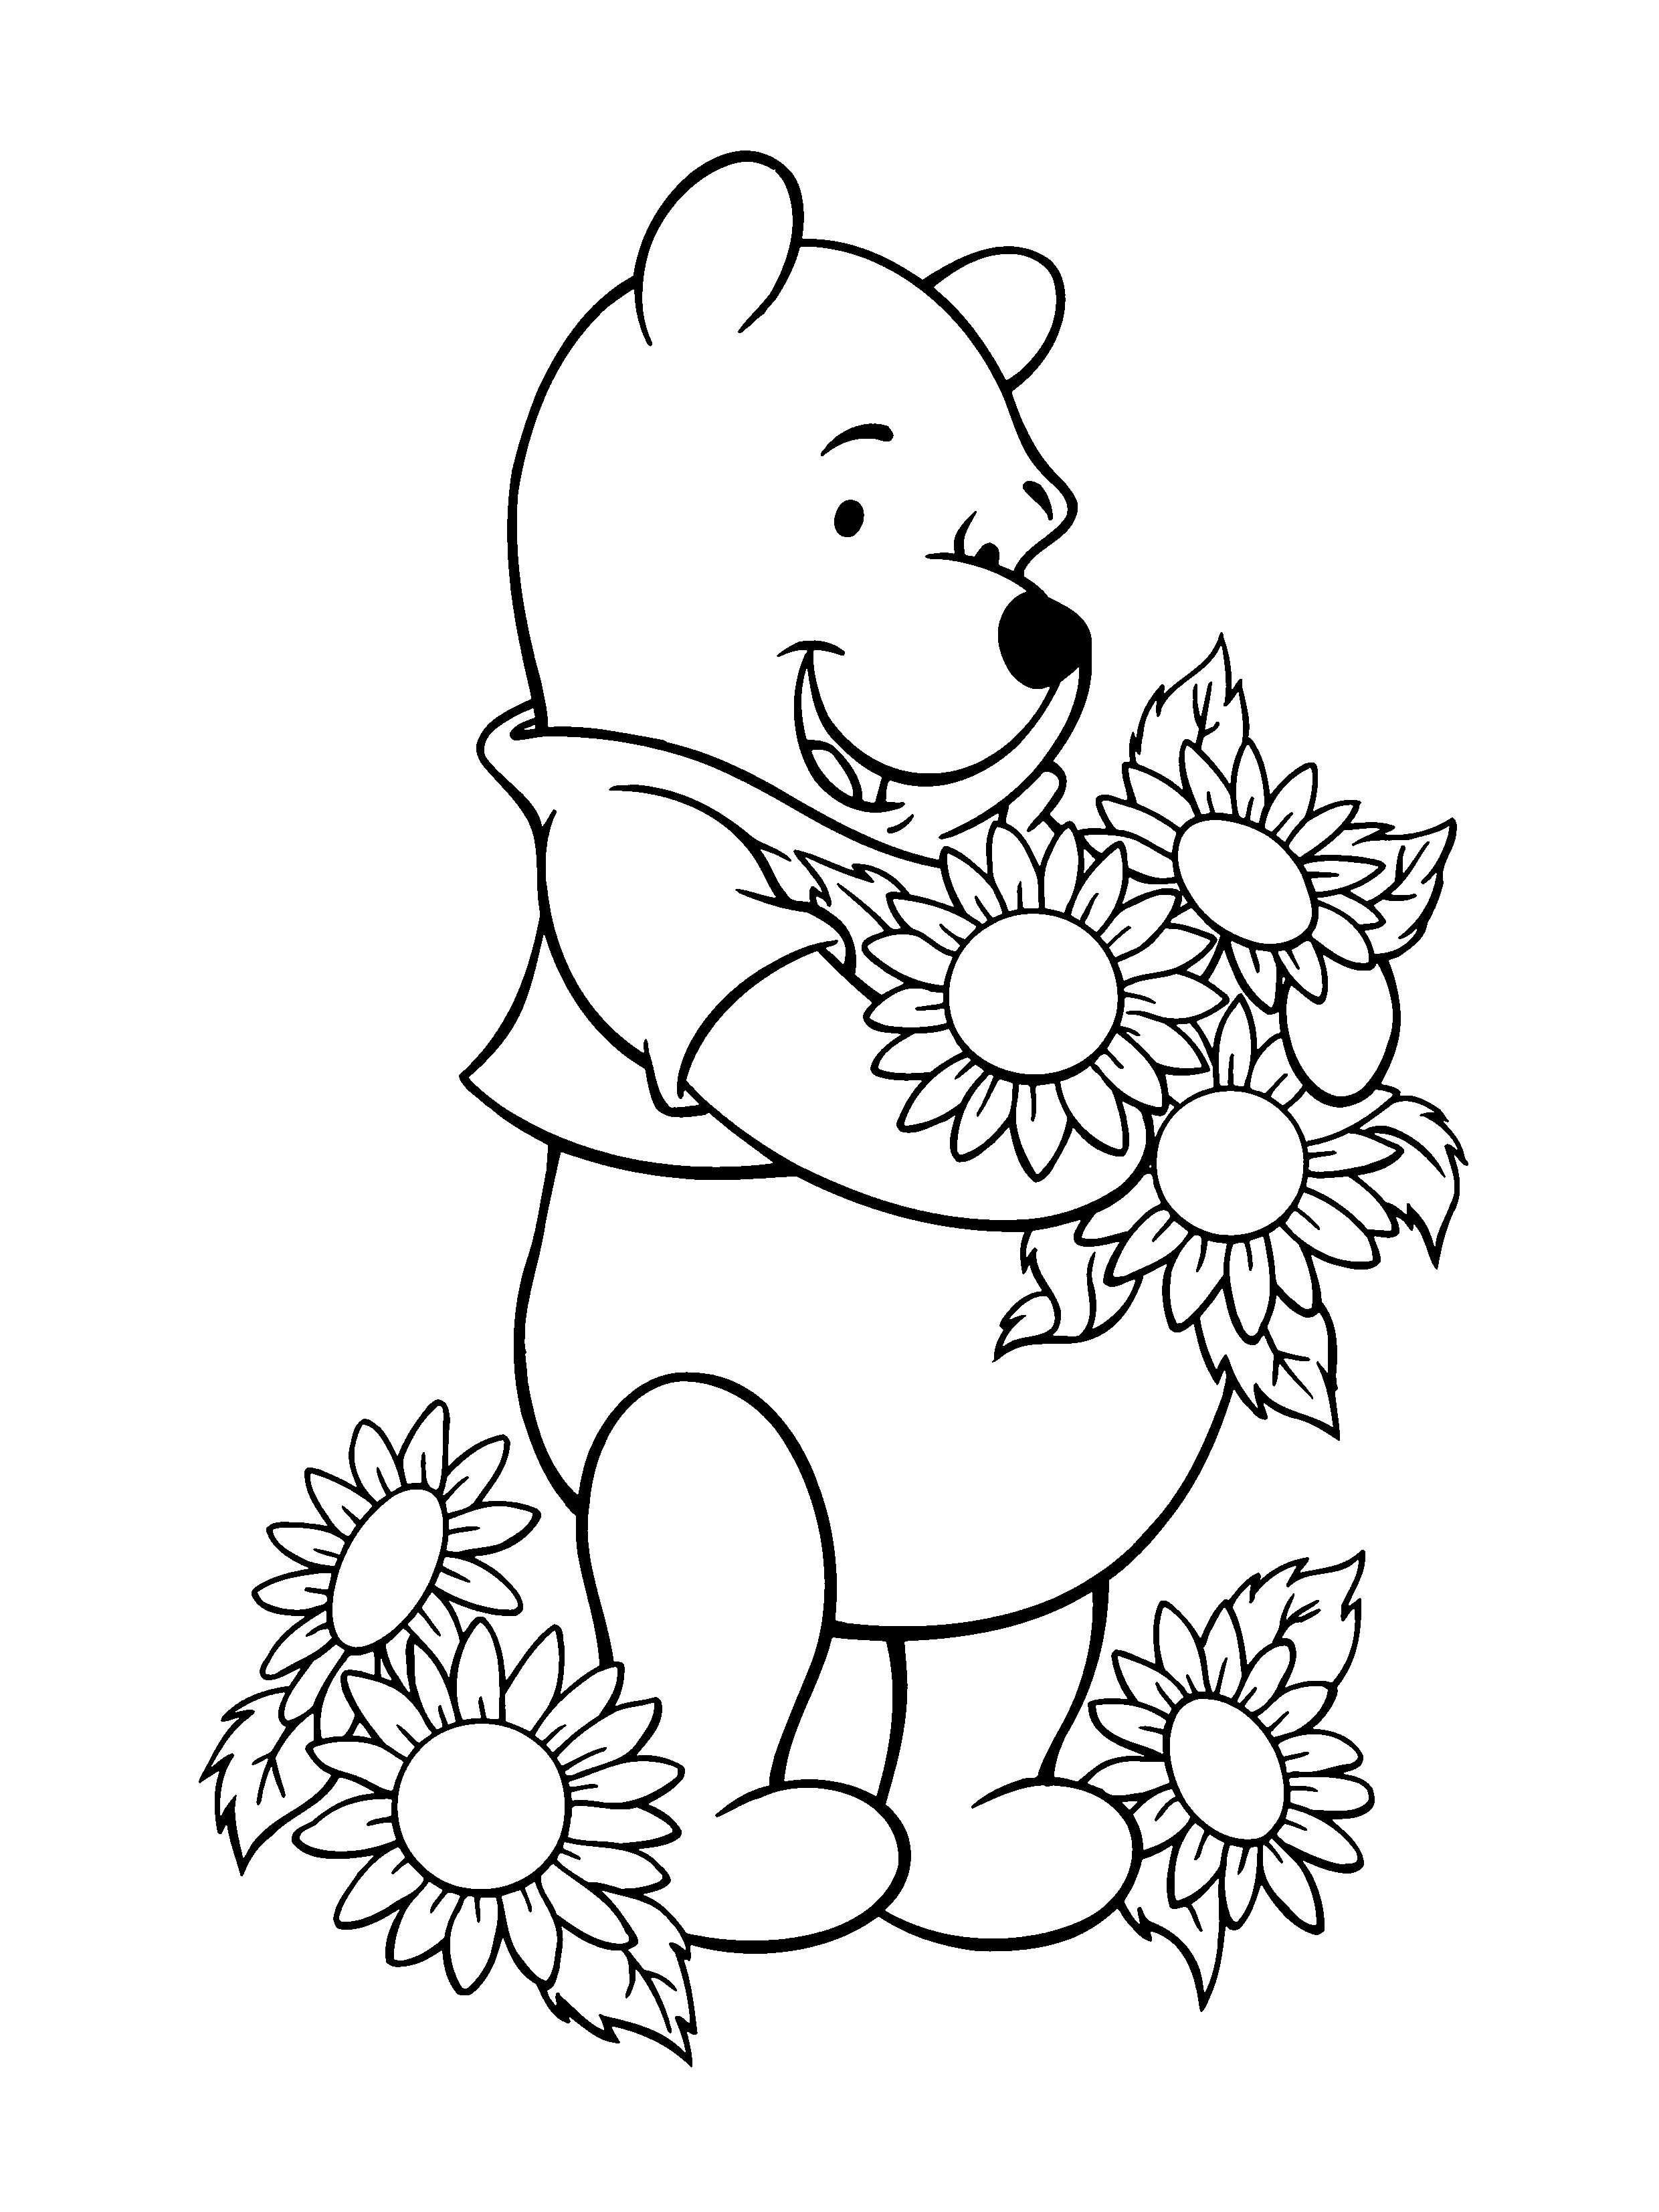 Fine Disney Kleurplaten Coloring Pages That You Must Know You Re